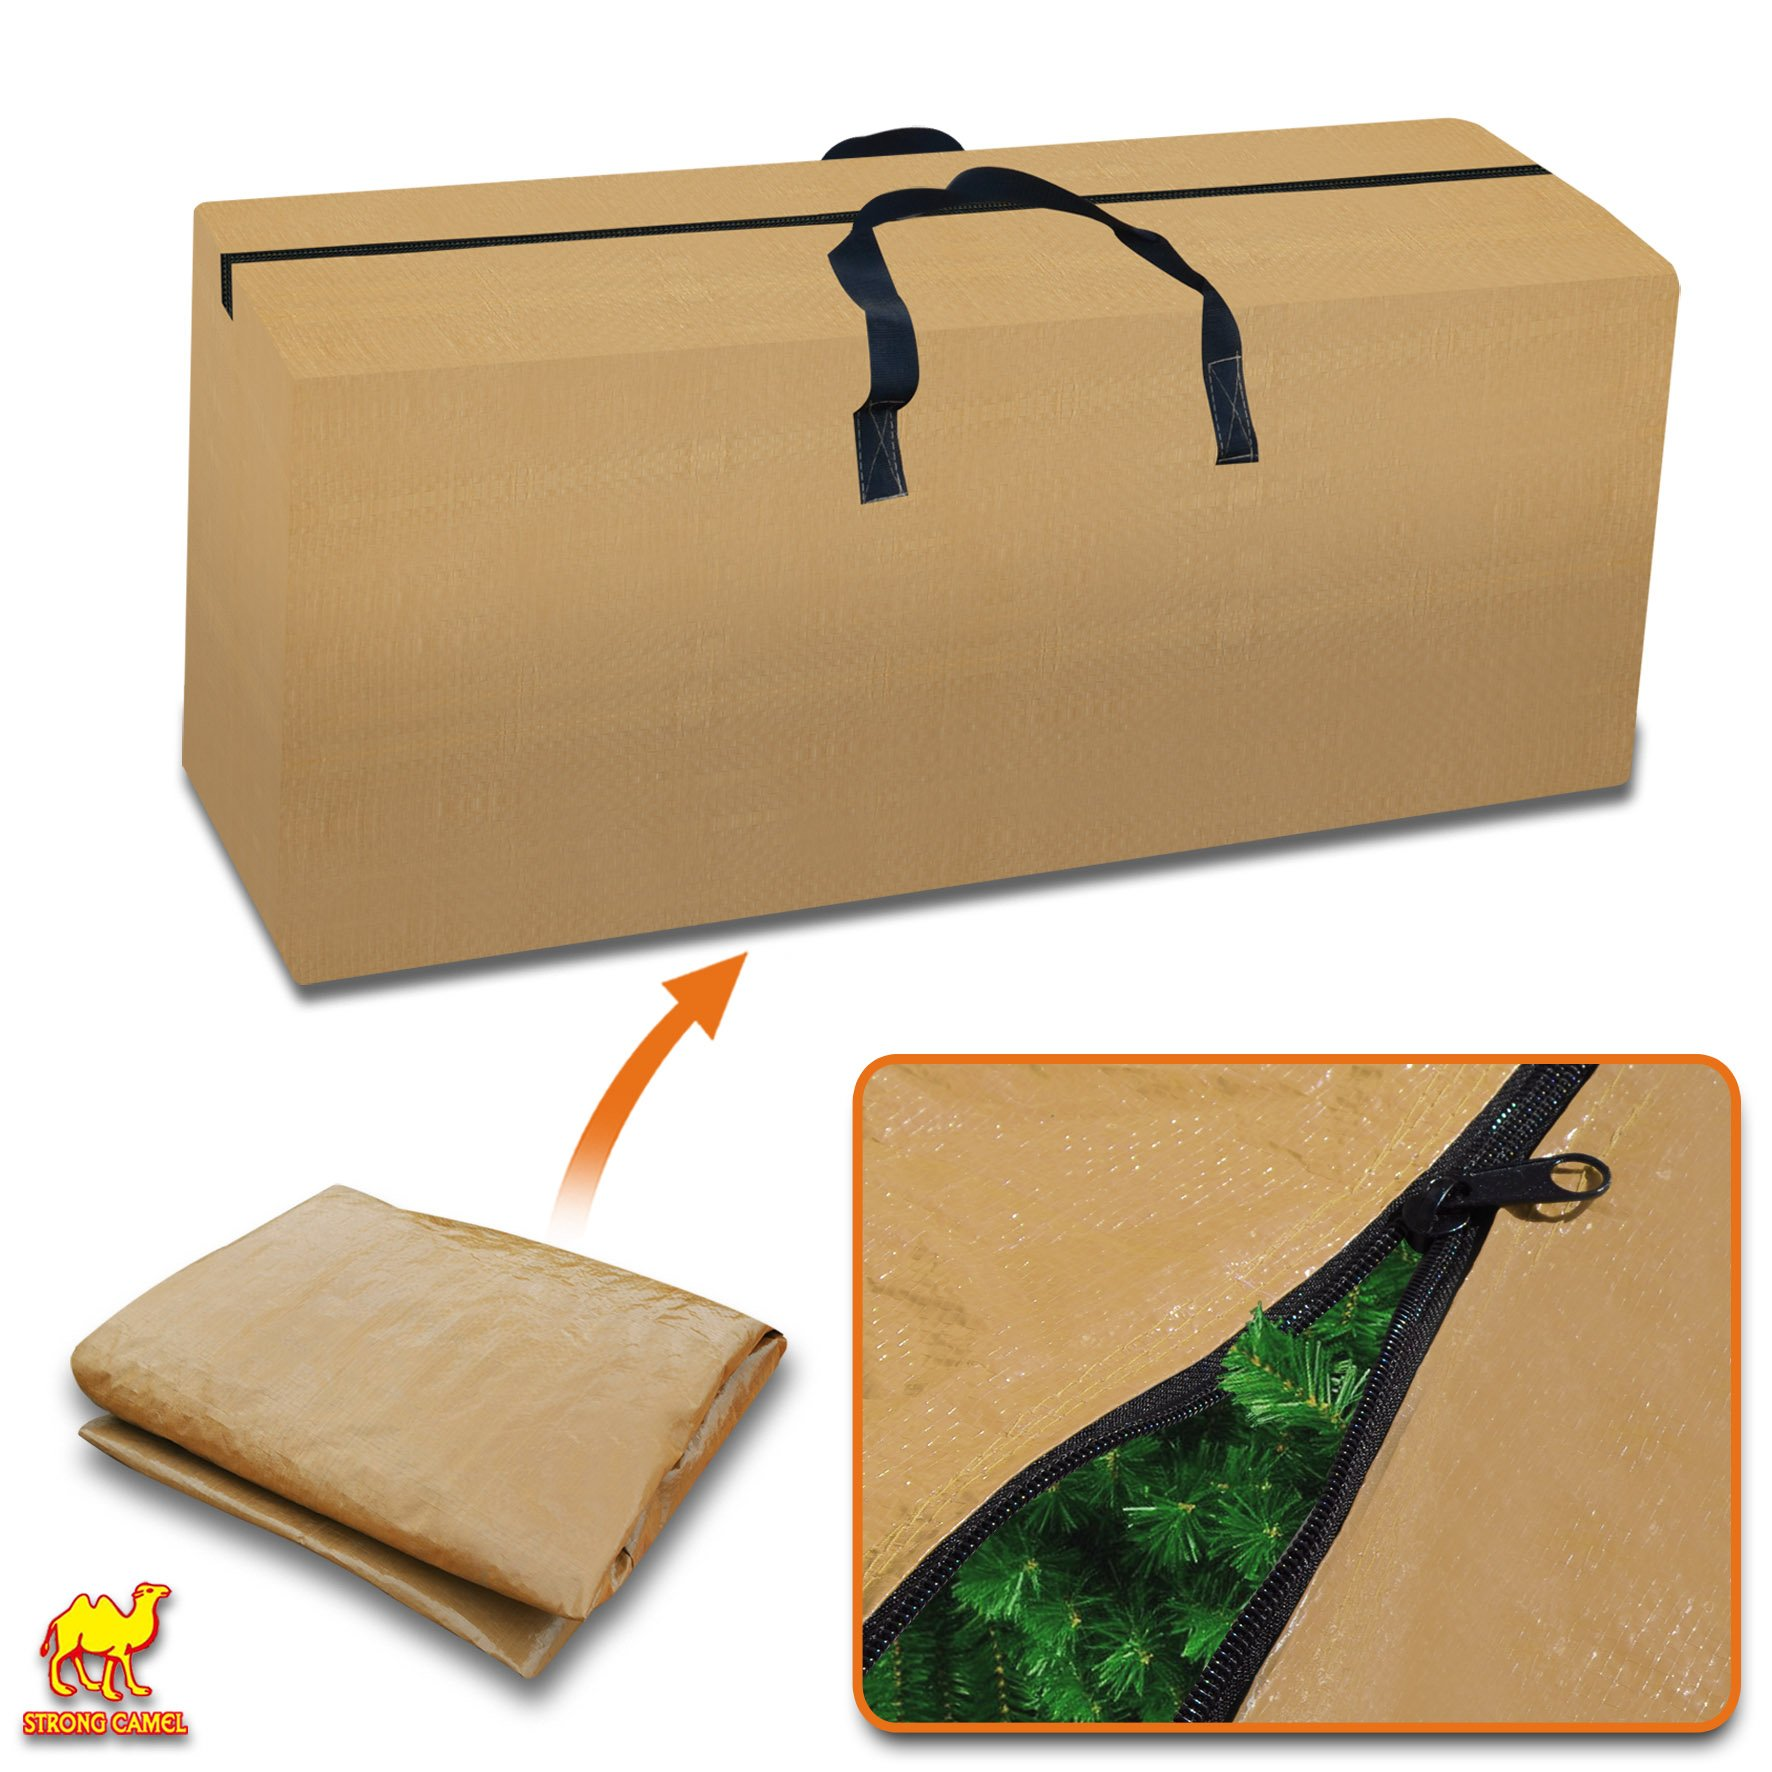 Strong Camel Heavy Duty Large Artificial Christmas Tree Storage Bag For Clean Up Holiday Green Up to 8ft Tan